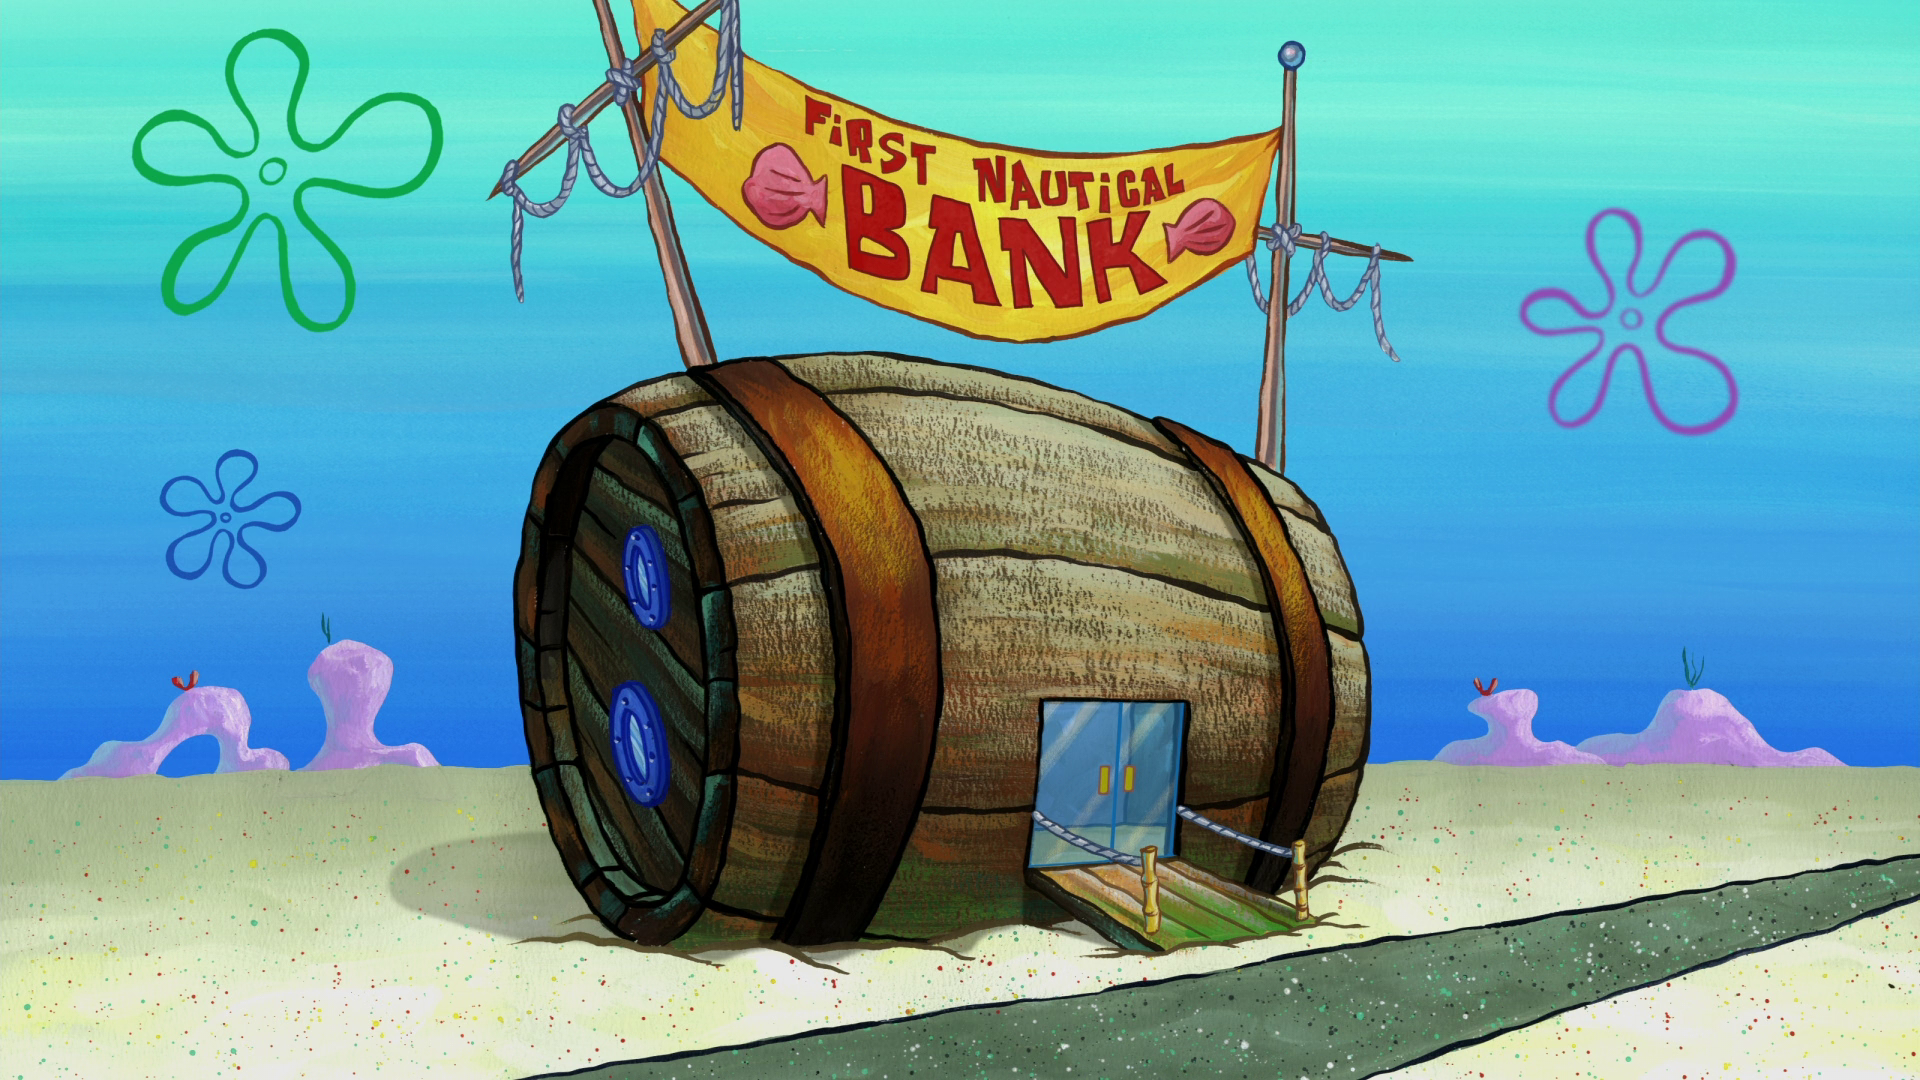 First Nautical Bank